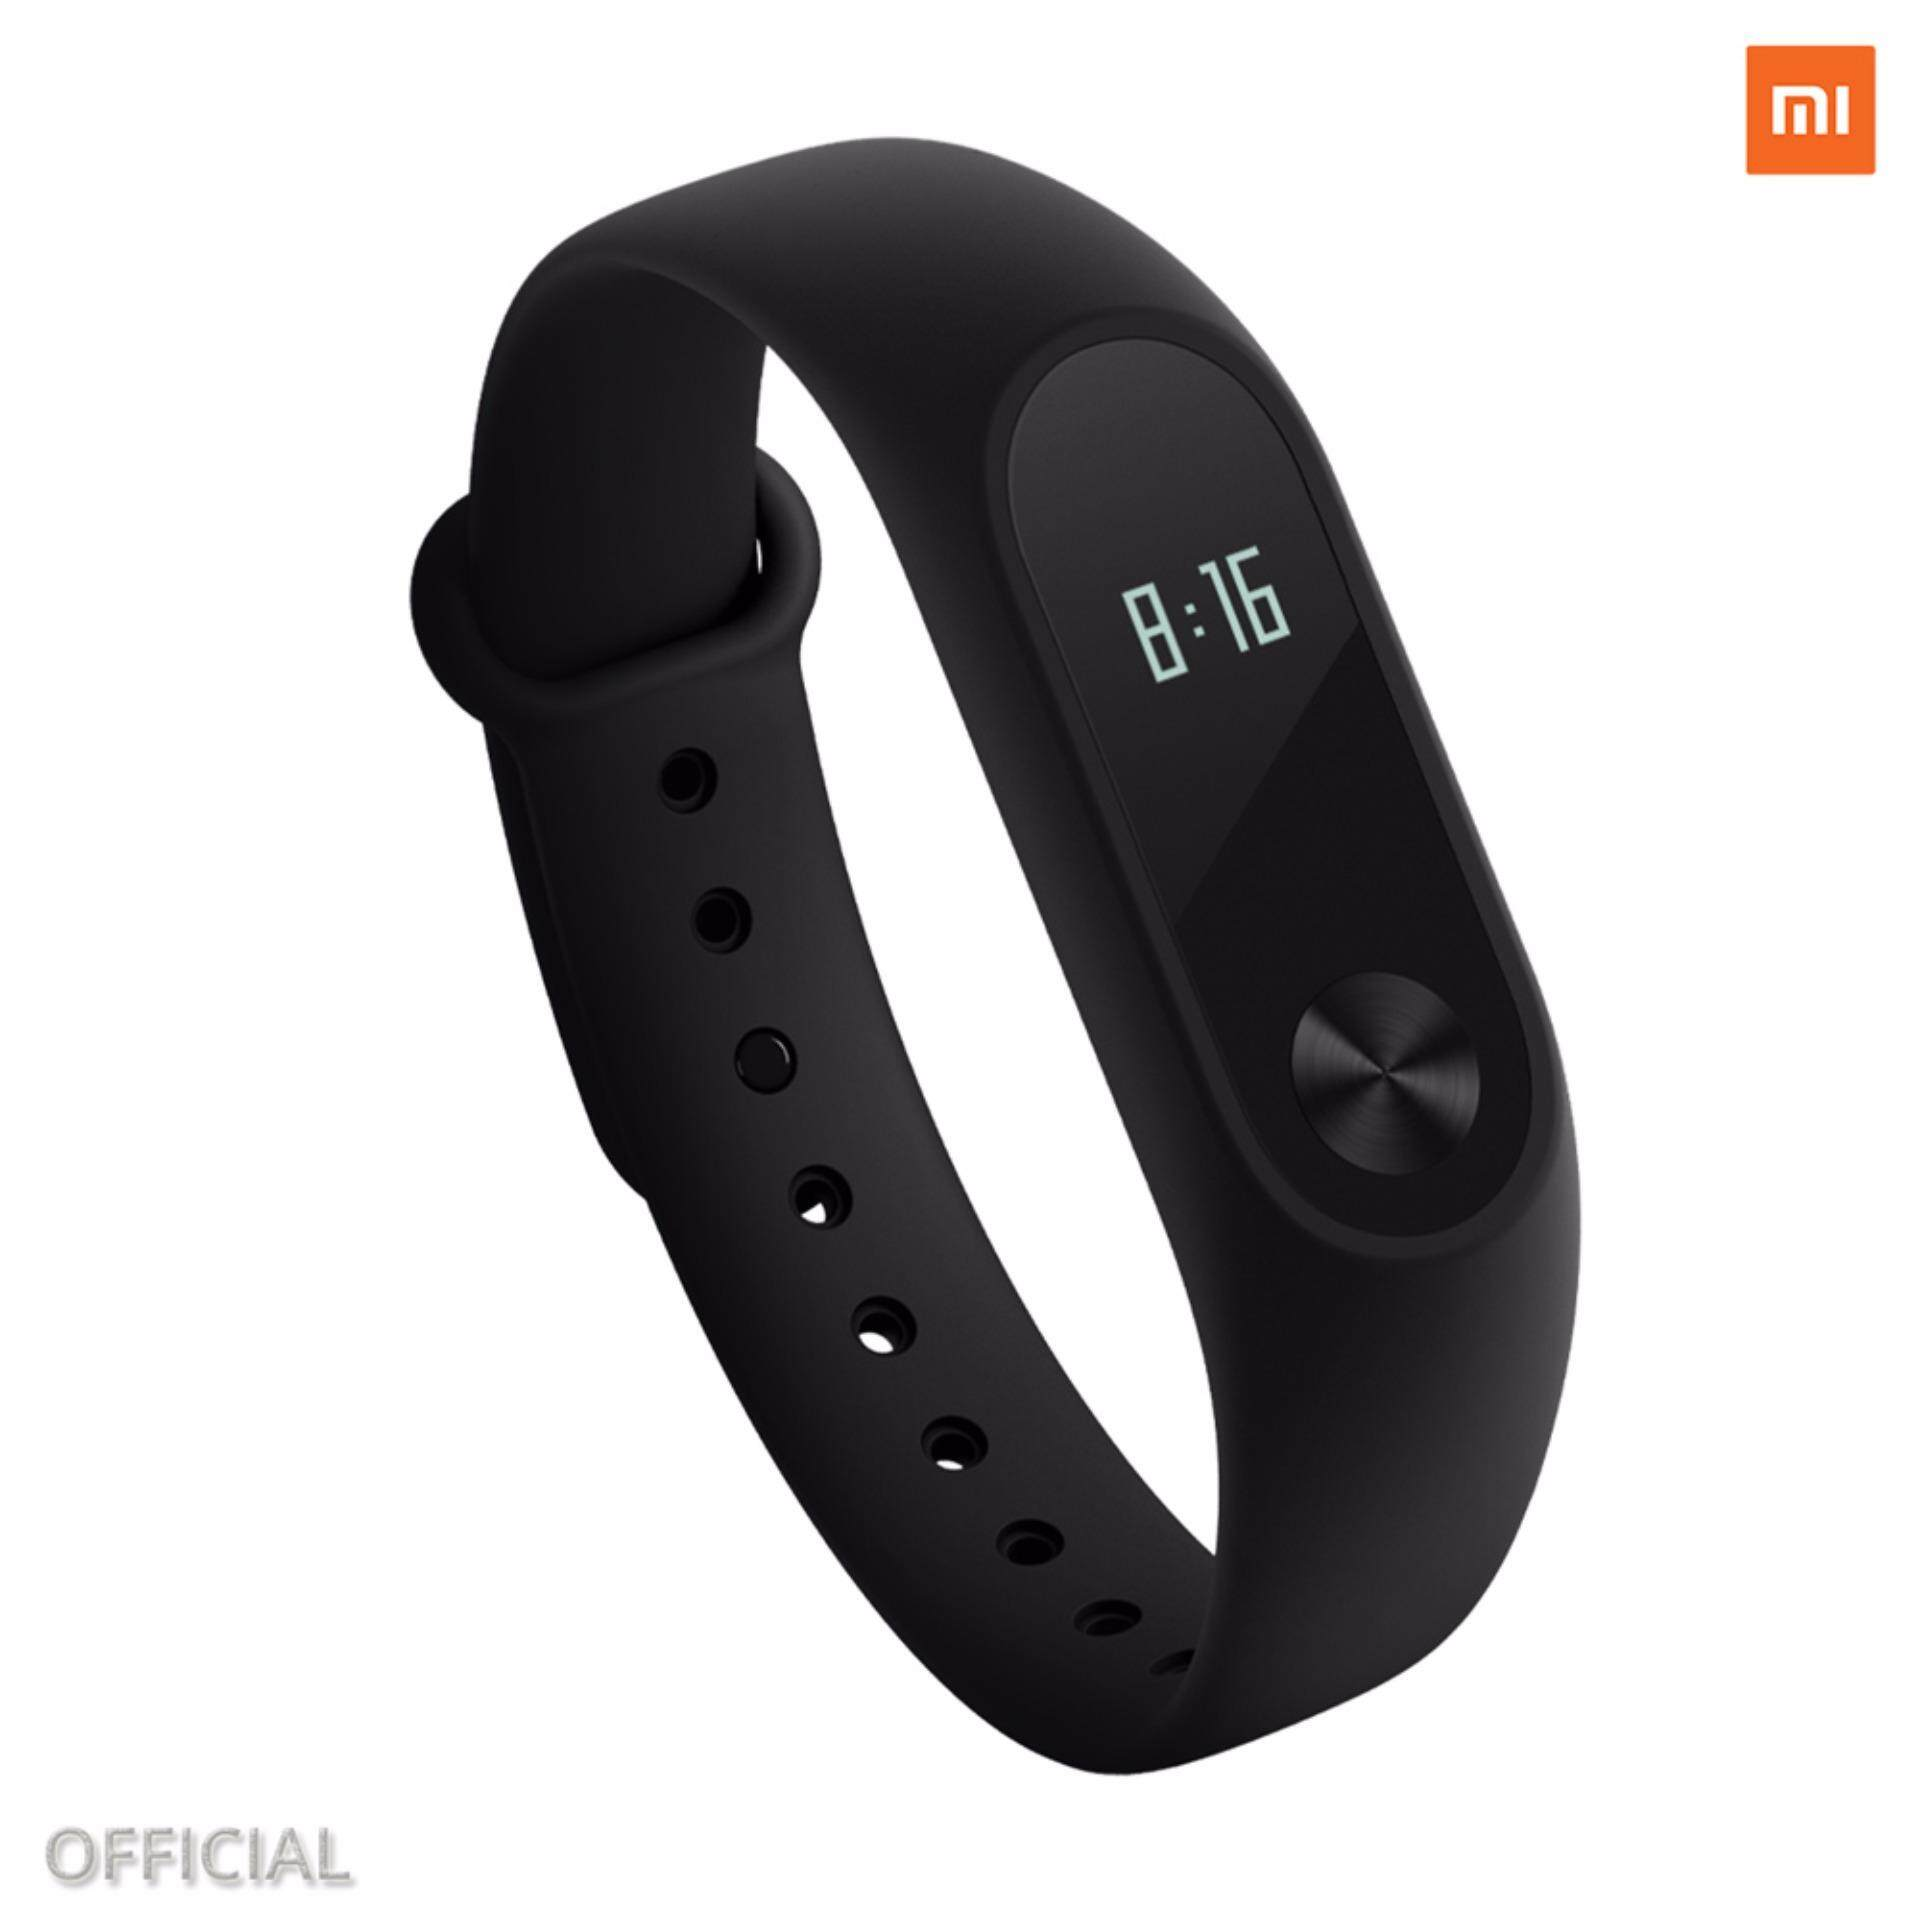 monitor bracelet android bp for tracking smart ios fitness bluetooth watch tracker pin smartband hr waterproof watches compatible pedomete